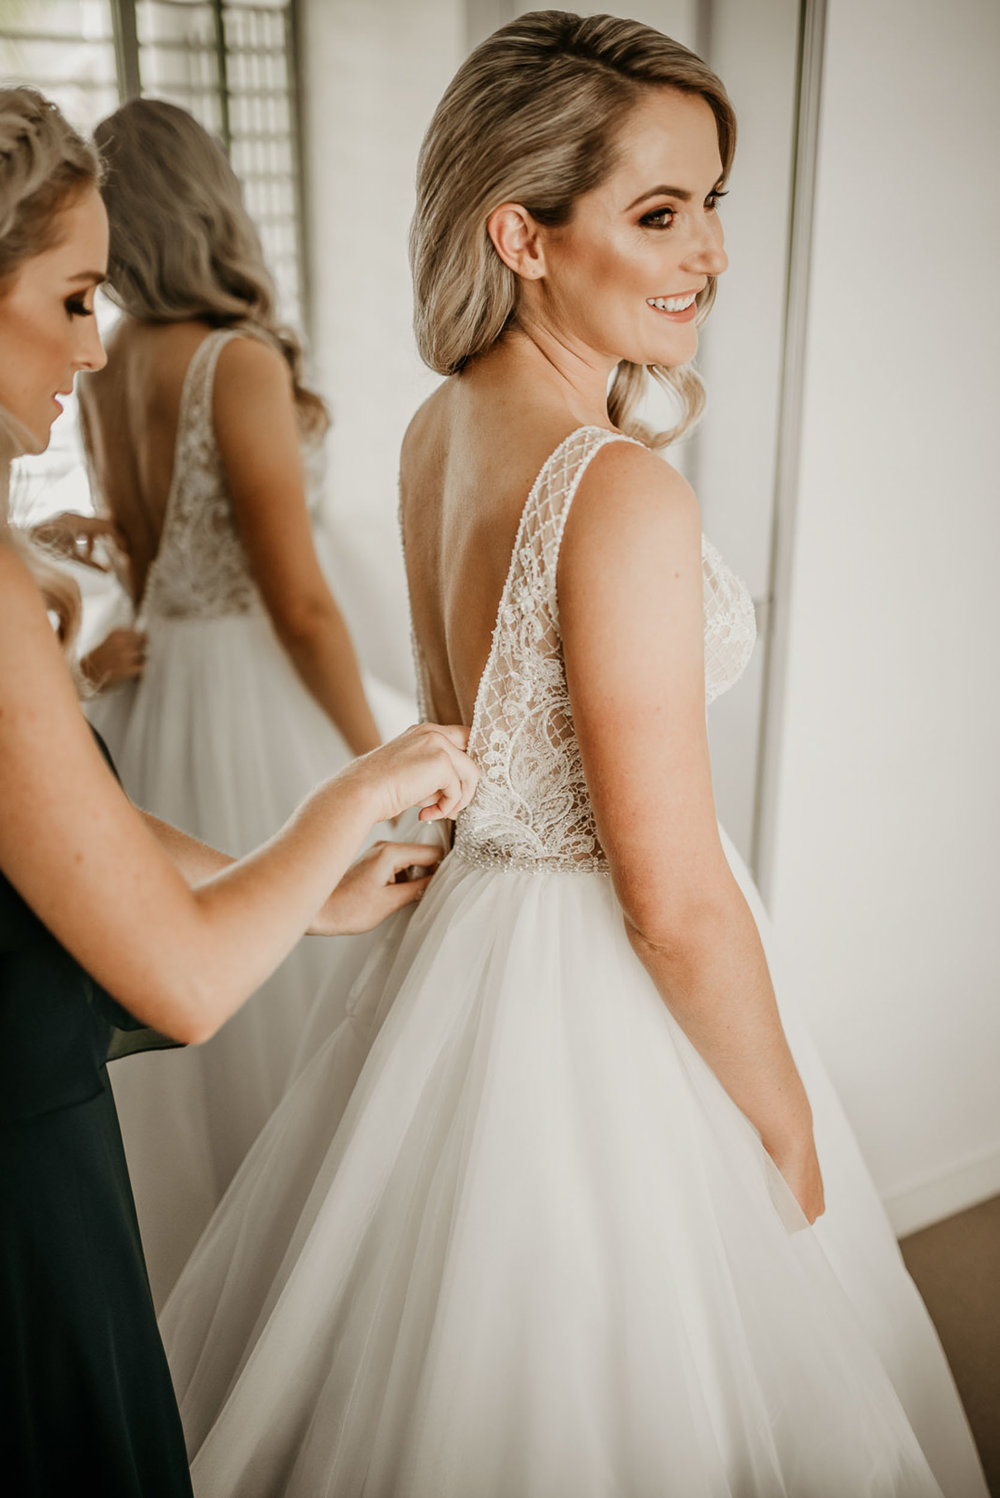 The Raw Photographer - Townsville Wedding Photographer - Magnetic Island - Destination Wedding - Dress White Lily Couture Bridal Nicole Milano-12.jpg